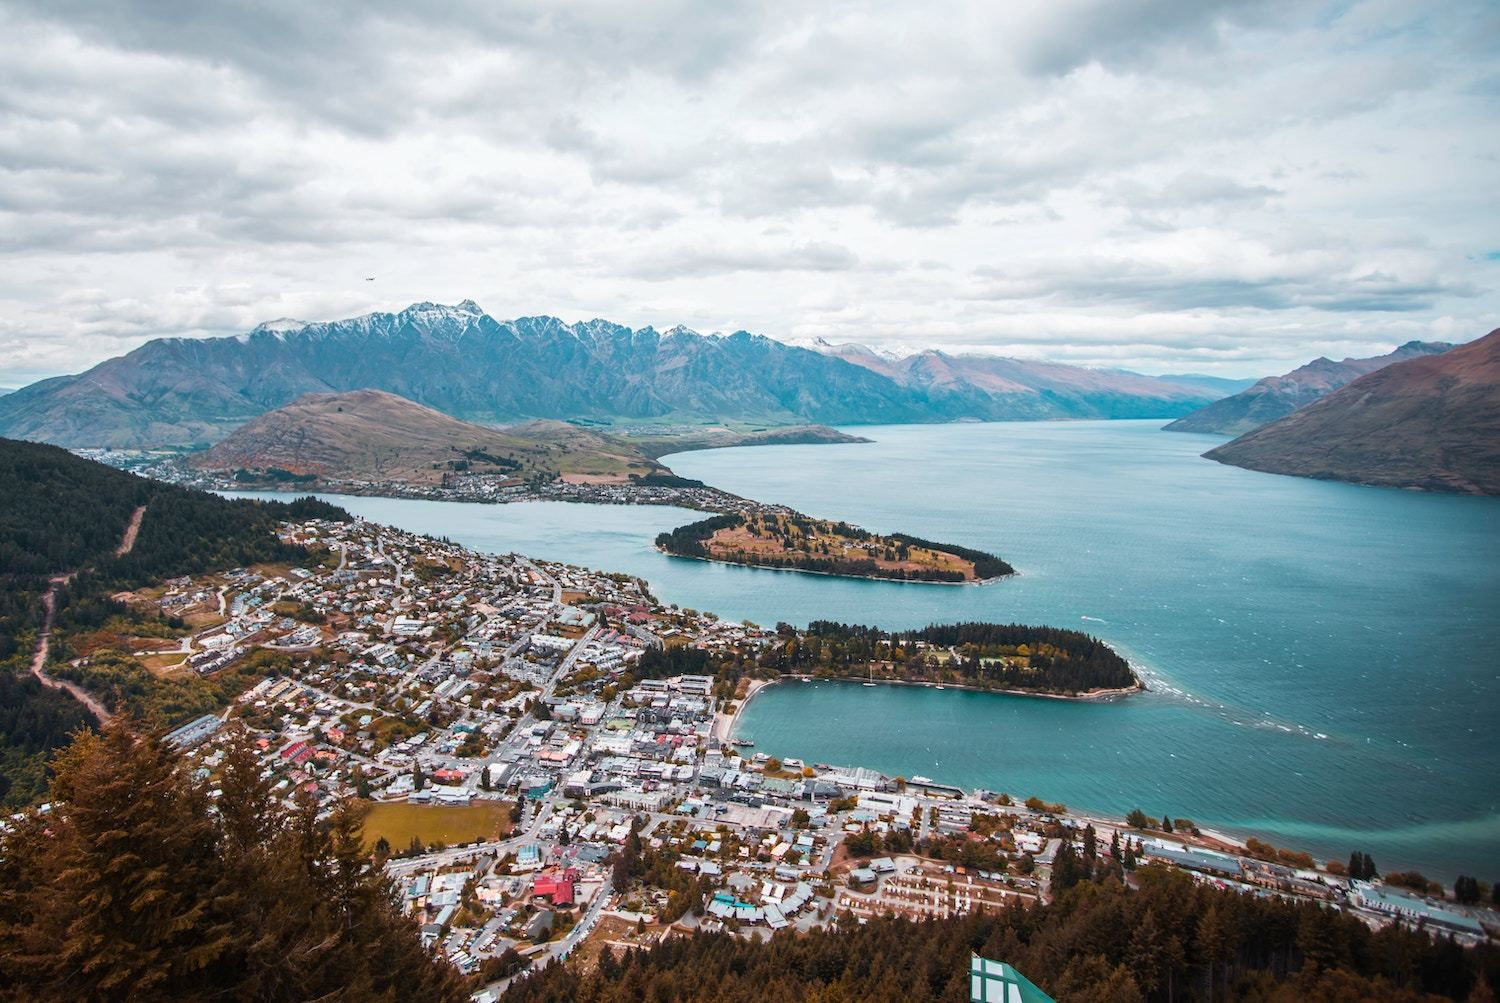 Where to stay in Queenstown - Airbnb Rentals 2020